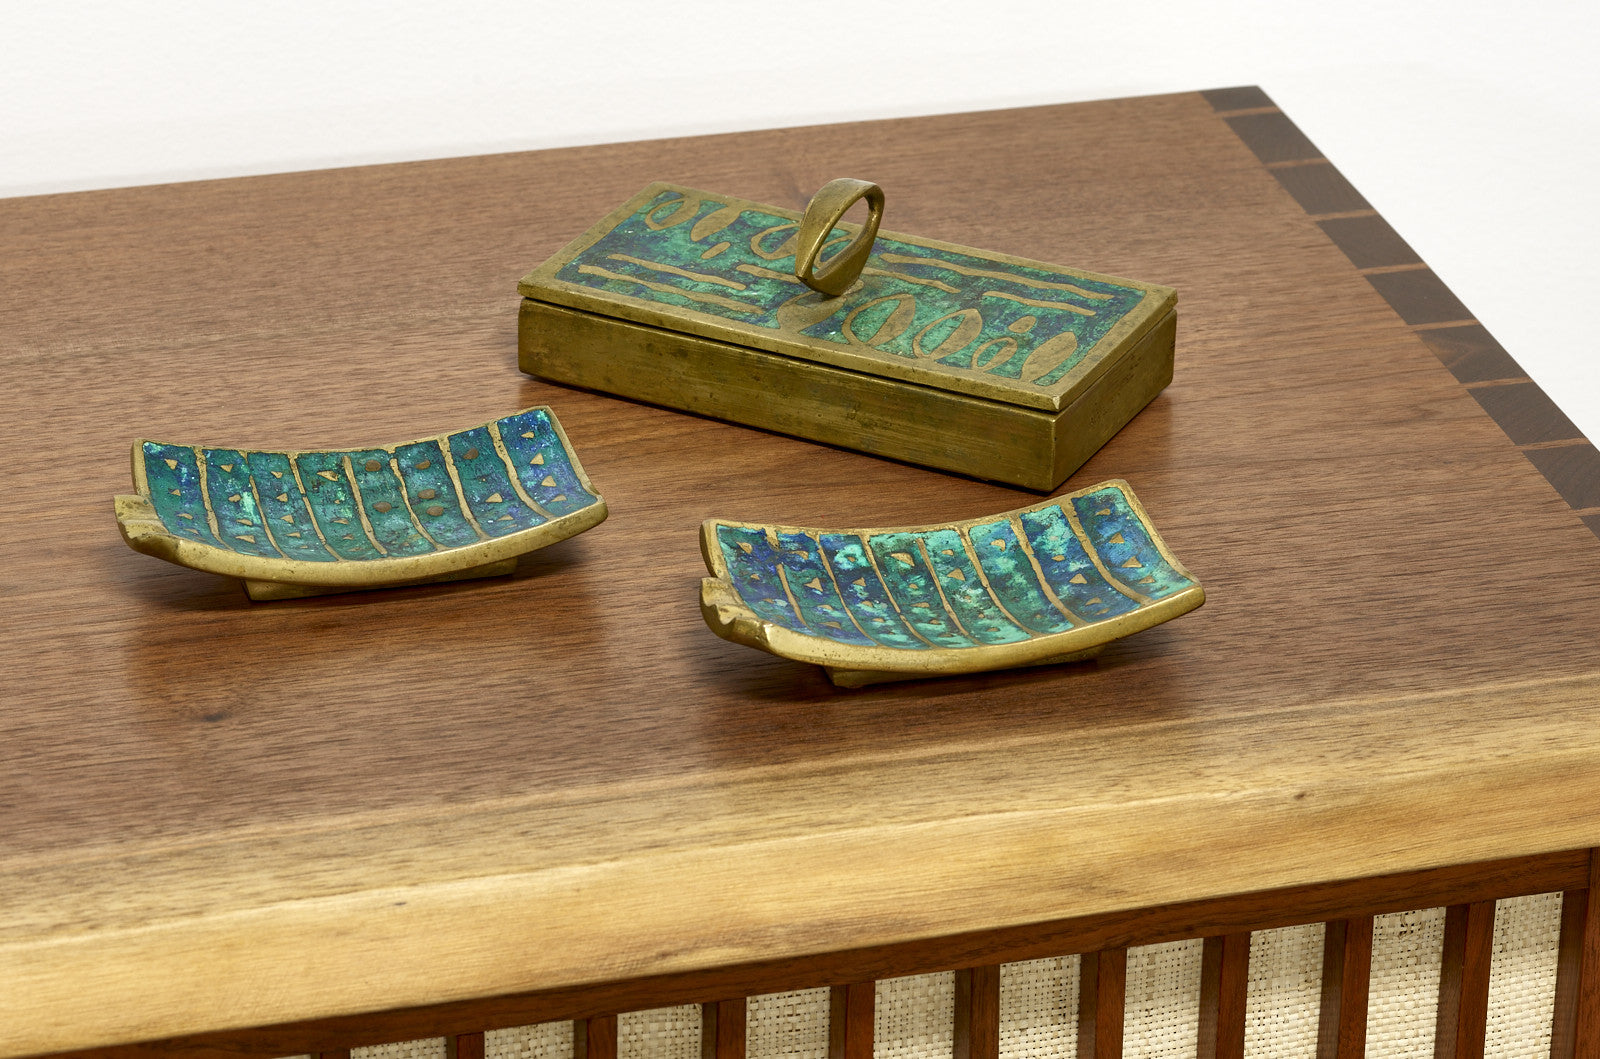 Pepe Mendoza Brass and Ceramic Dish, 1950s - The Exchange Int